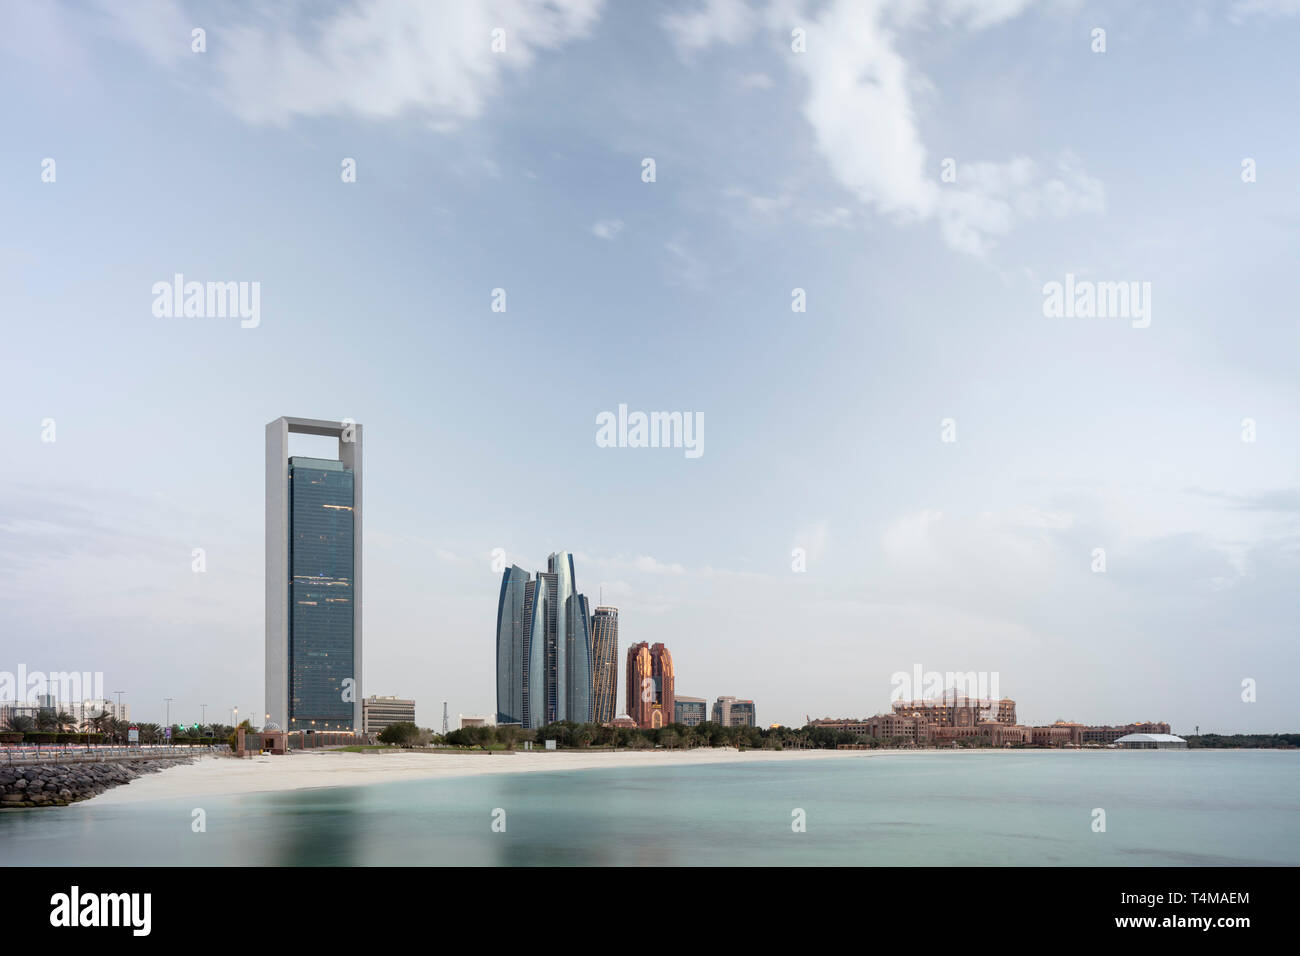 ABU DHABI, UNITED ARAB EMIRATES - April 5, 2019: Abu Dhabi National Oil Company / ADNOC head office (left), Etihad Towers (centre), which consist of r - Stock Image